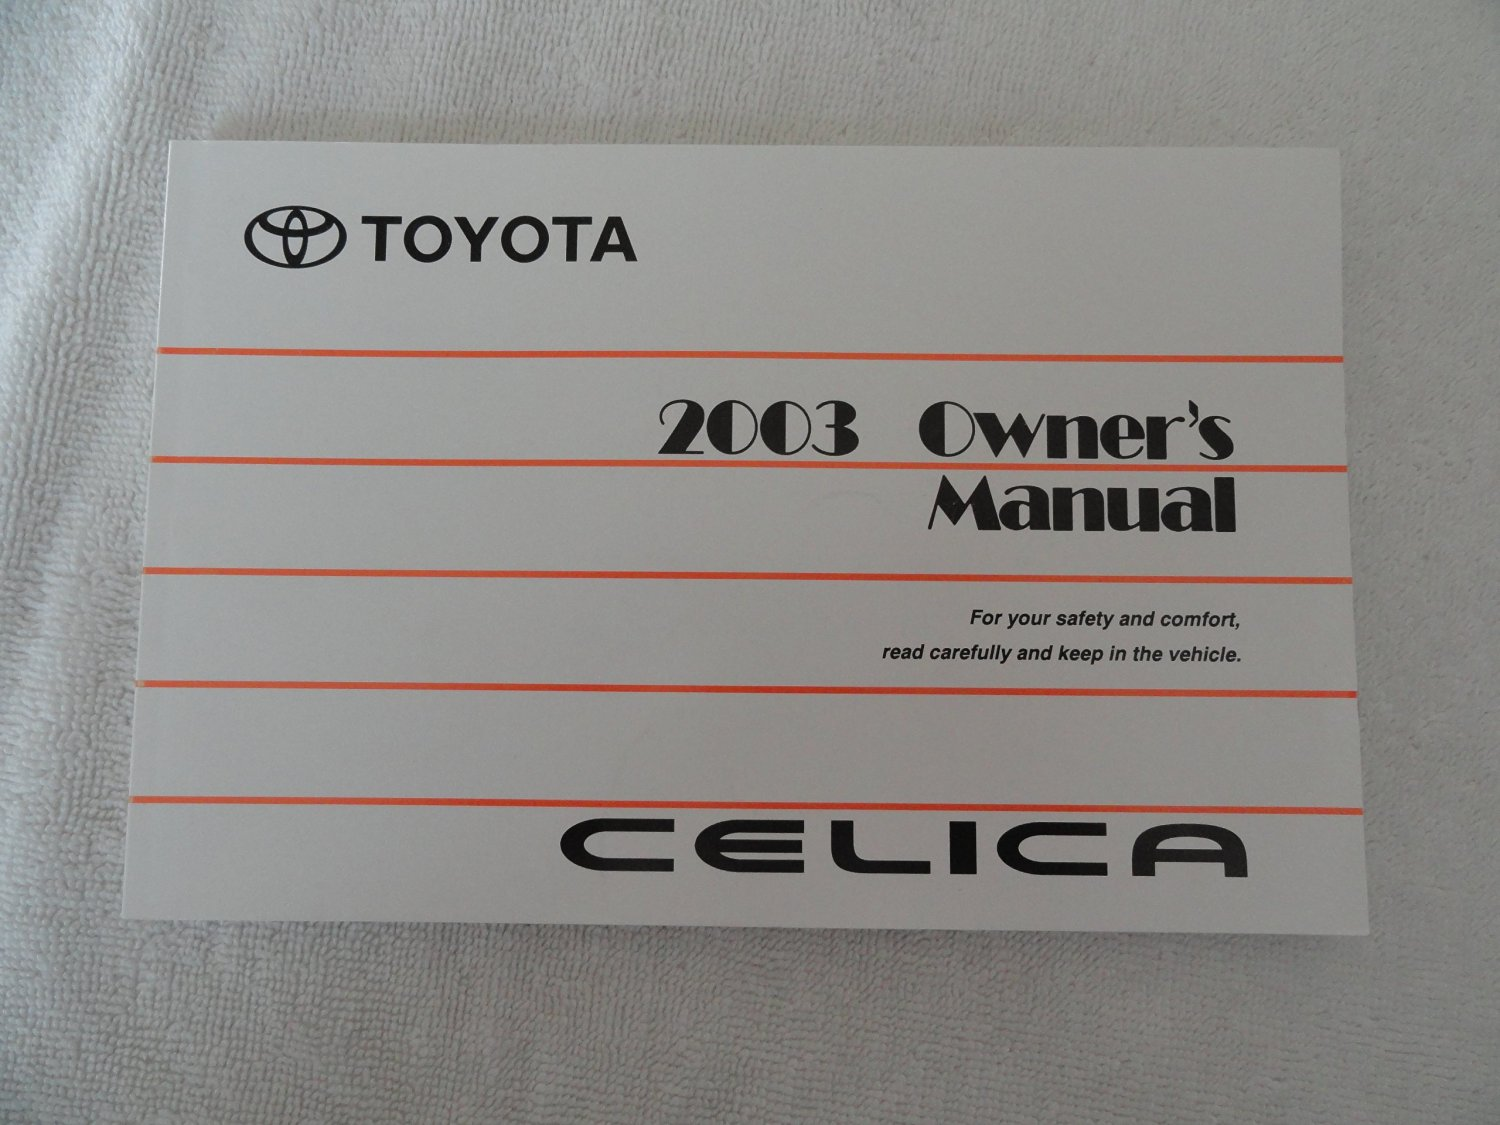 cheap toyota owners manual find toyota owners manual deals on line rh guide alibaba com 2000 Toyota Celica 2003 toyota celica gt owners manual